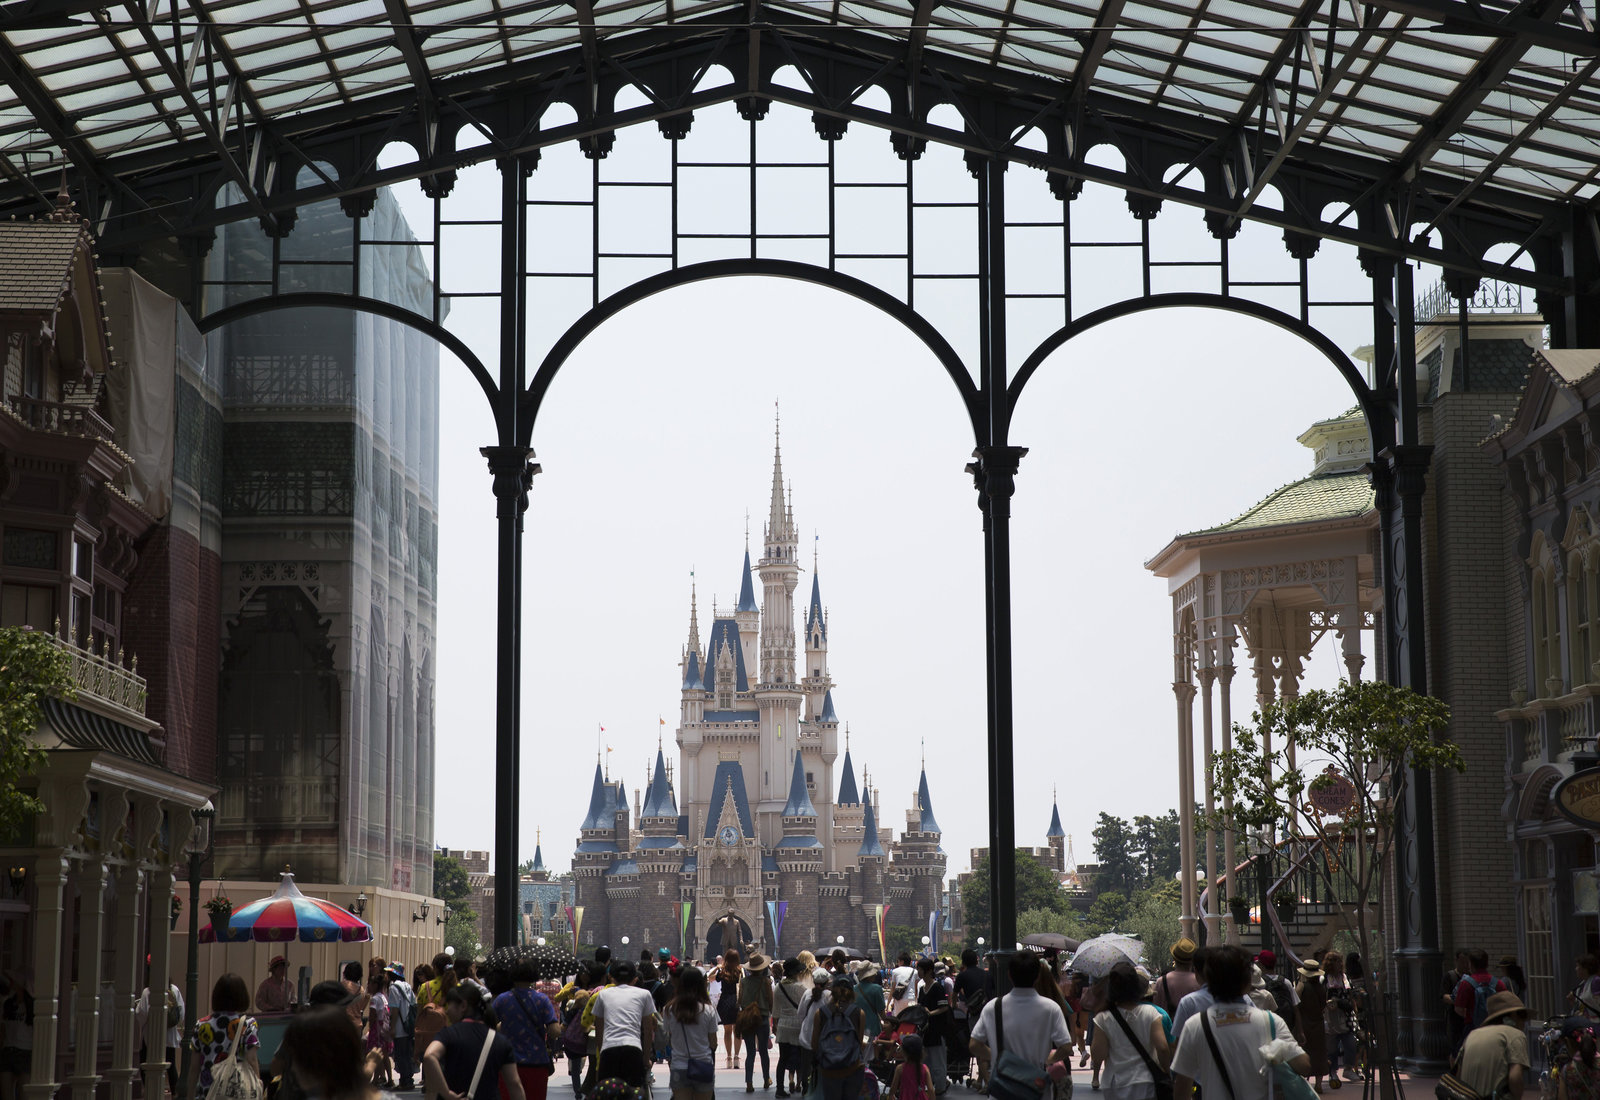 Tokyo Disneyland Looks Absolutely Magical Covered in Snow — See the ...